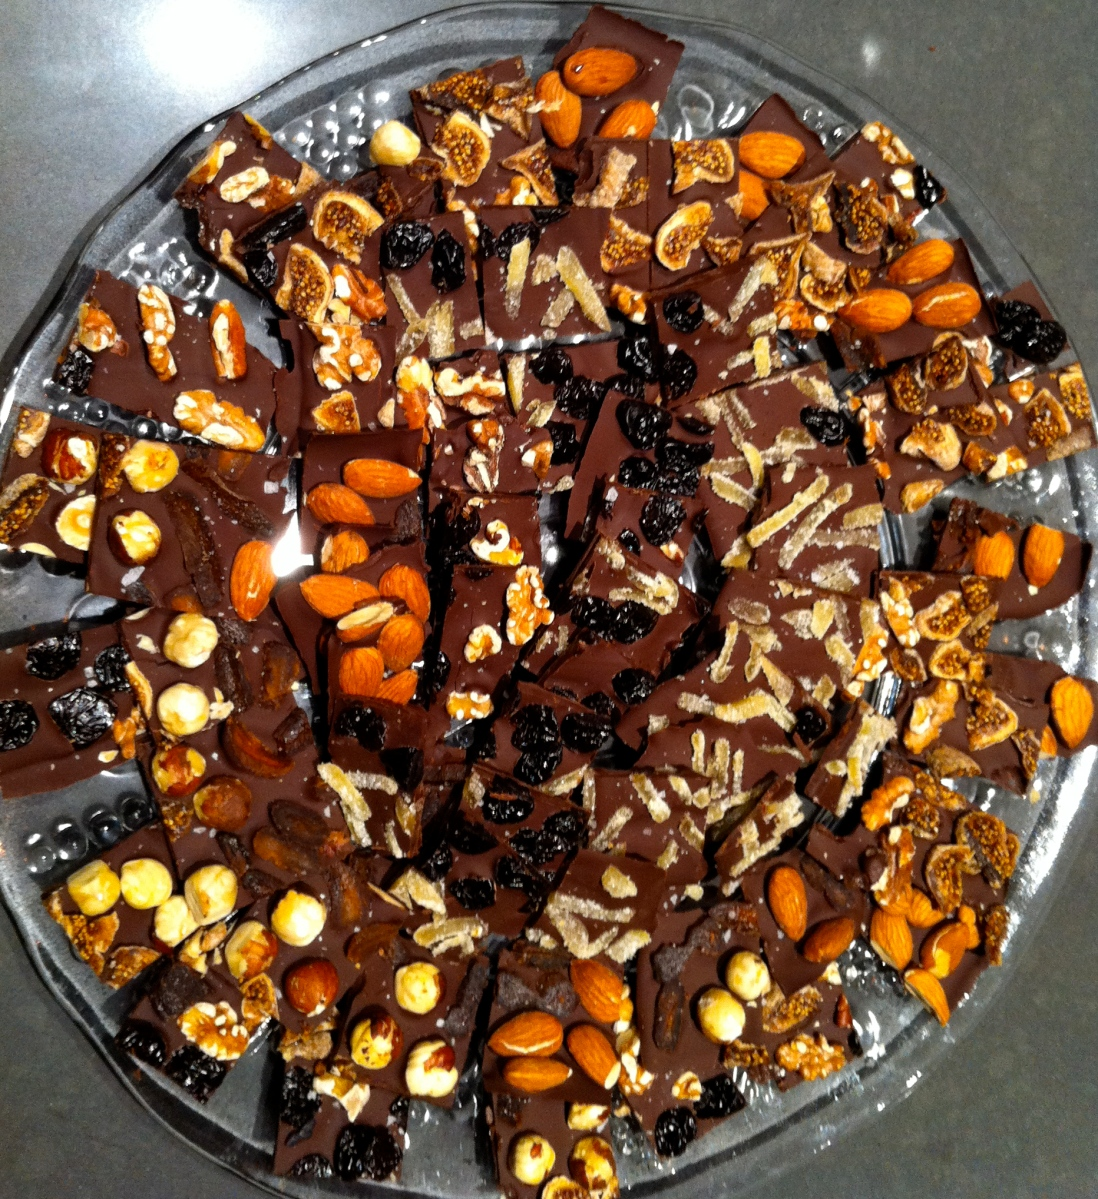 Yes we're going to a party, party - Dark Chocolate Bark